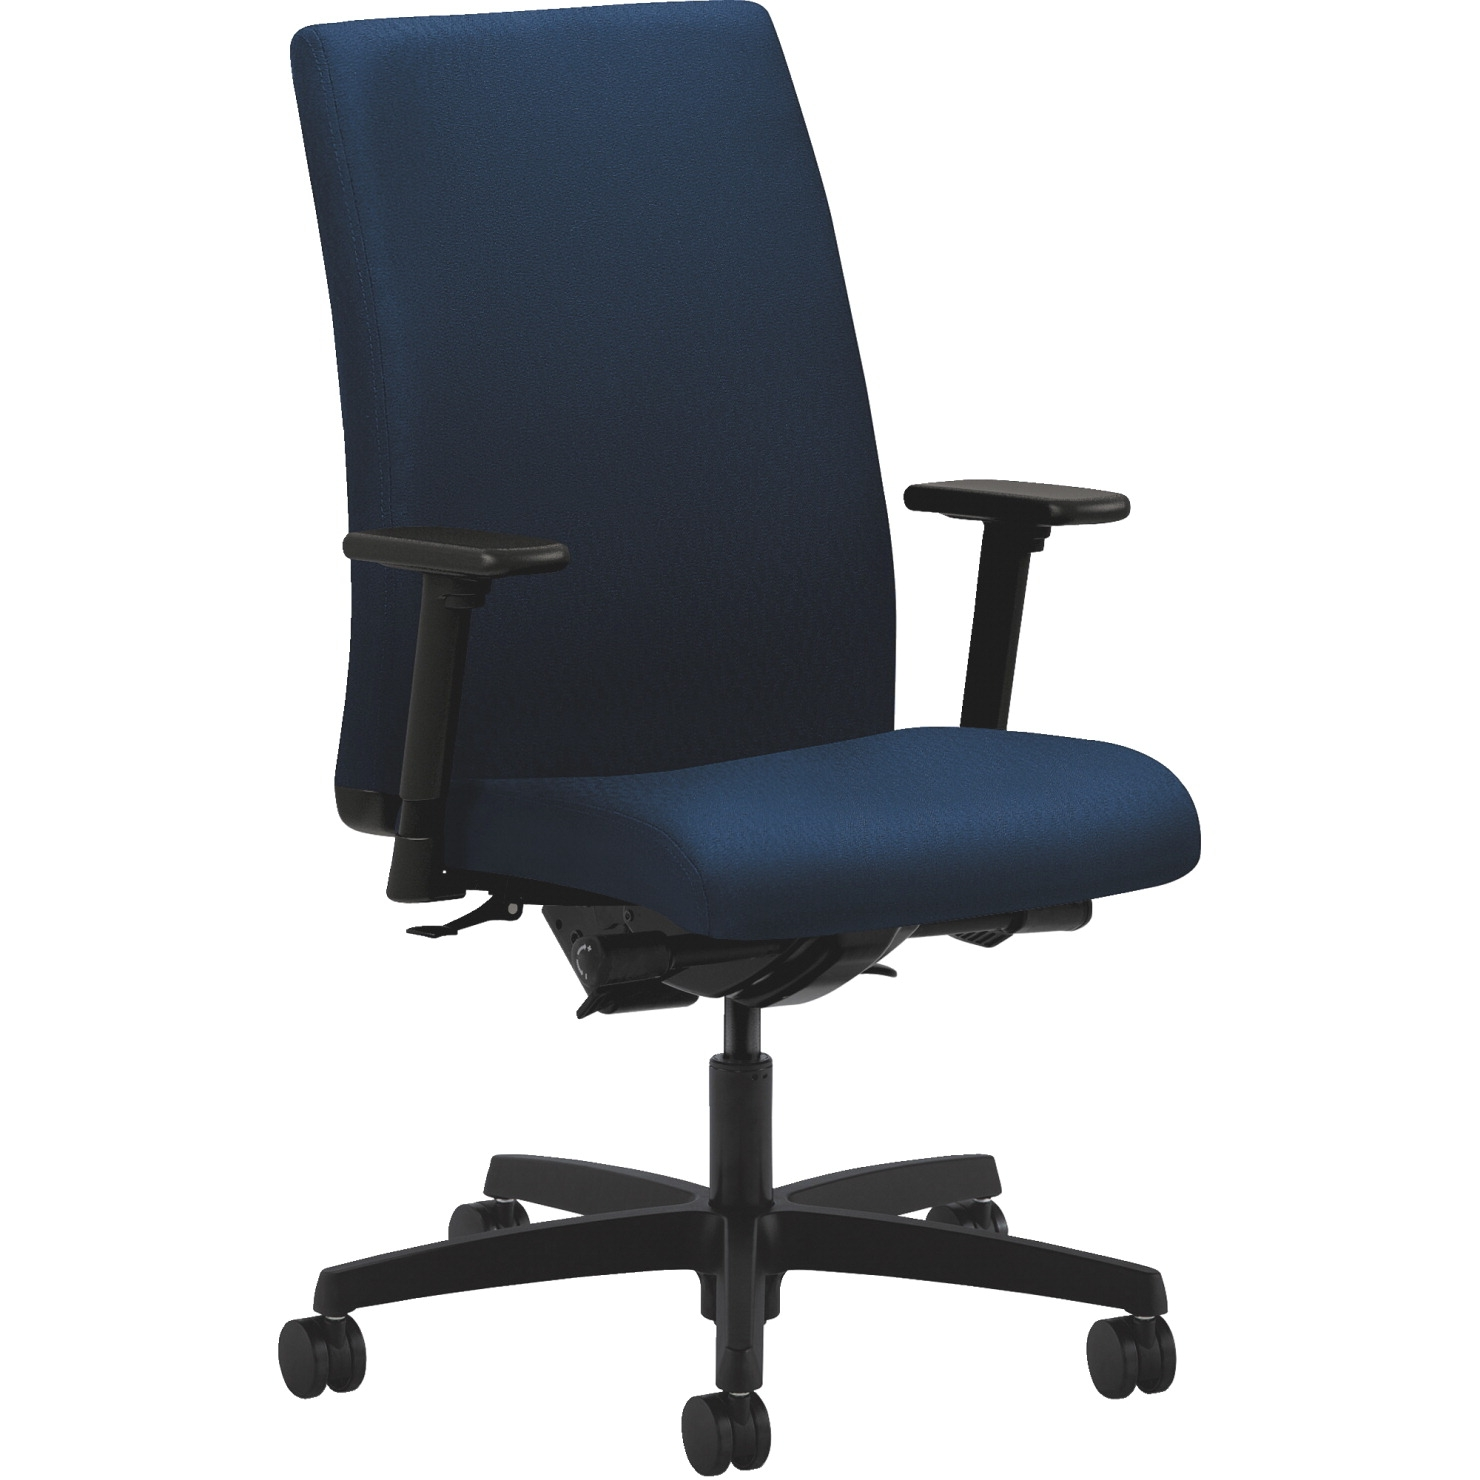 Hon Ignition Executive Chair; 27 X 39 X 44 Inches; Mariner - 1331114 - Facilities Management Bar Stool Set Table Chair Metal State Logo Chairs Wood Metal Chairs 1331114